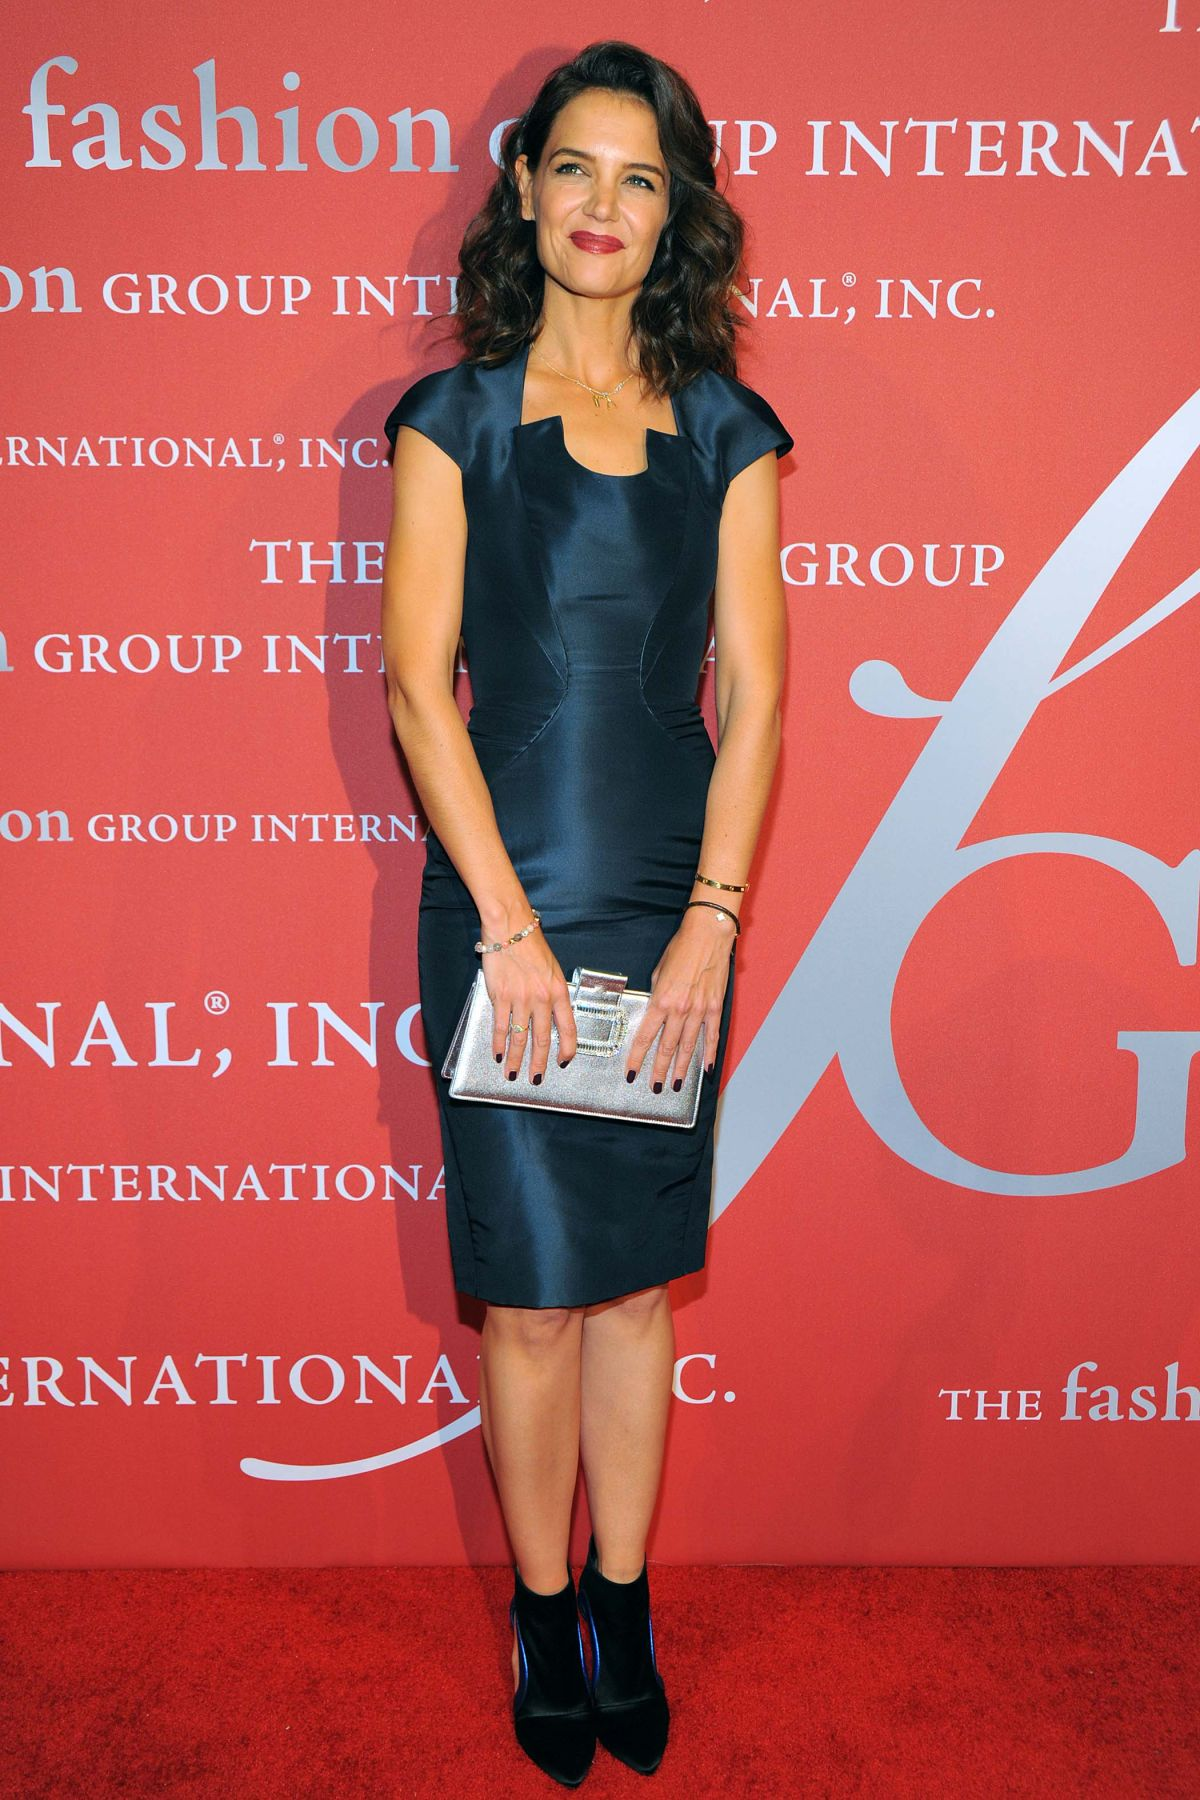 katie-holmes-at-2015-fashion-group-international-night-of-stars-gala-in-new-york-10-22-2015_11